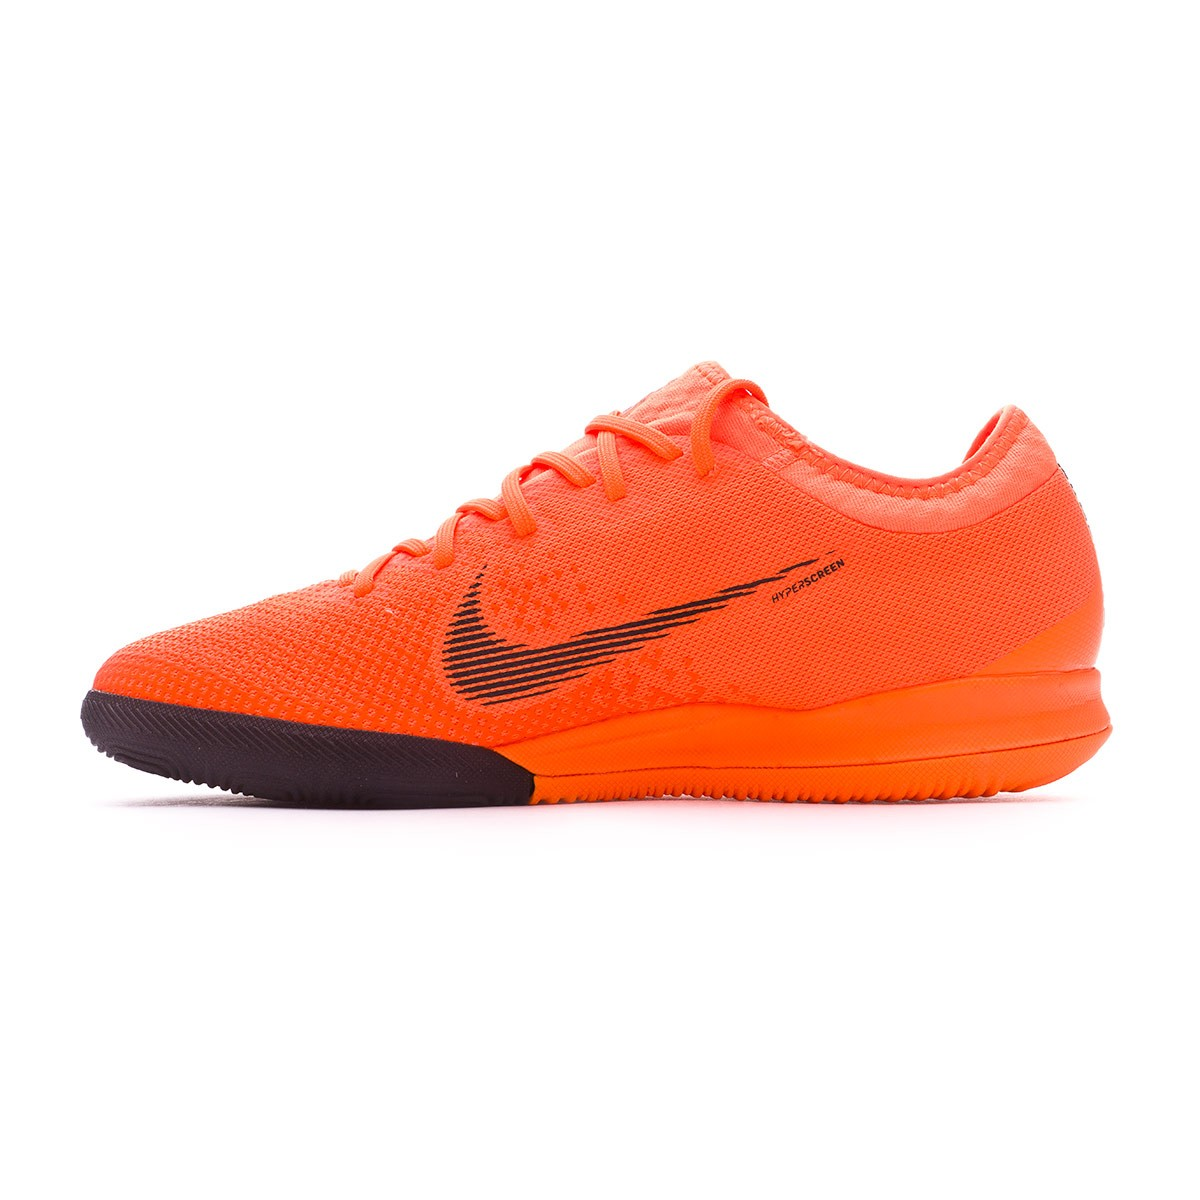 52425f6b3d31c Zapatilla Nike Mercurial VaporX XII Pro IC Total orange-Black-Volt - Tienda  de fútbol Fútbol Emotion